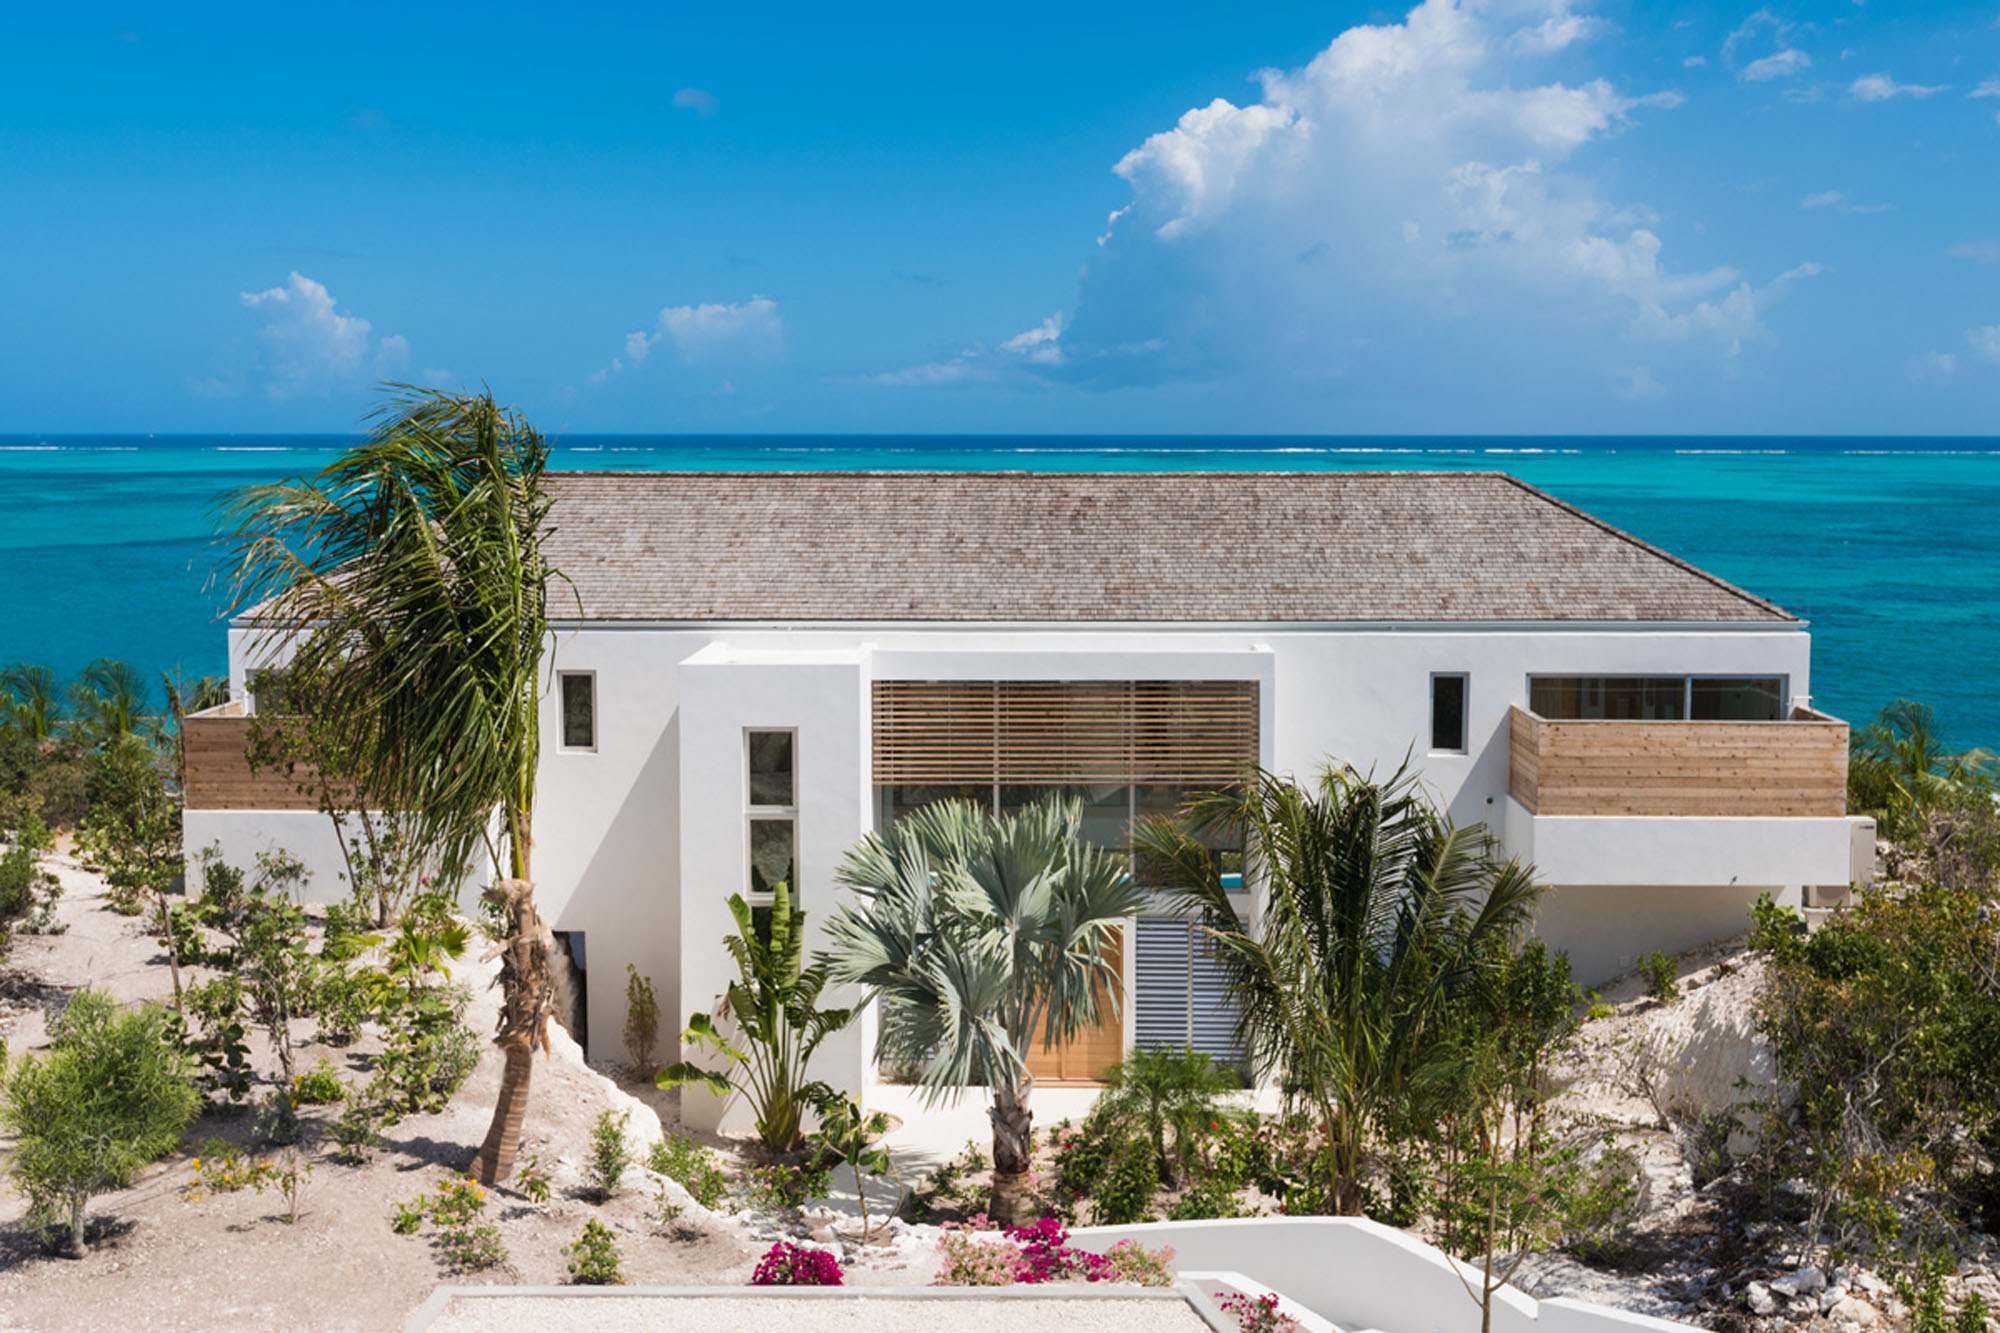 All the bedrooms are ocean facing in some of the Beach Enclave North Shore beachfront villas, Providenciales (Provo), Turks and Caicos Islands, BWI.